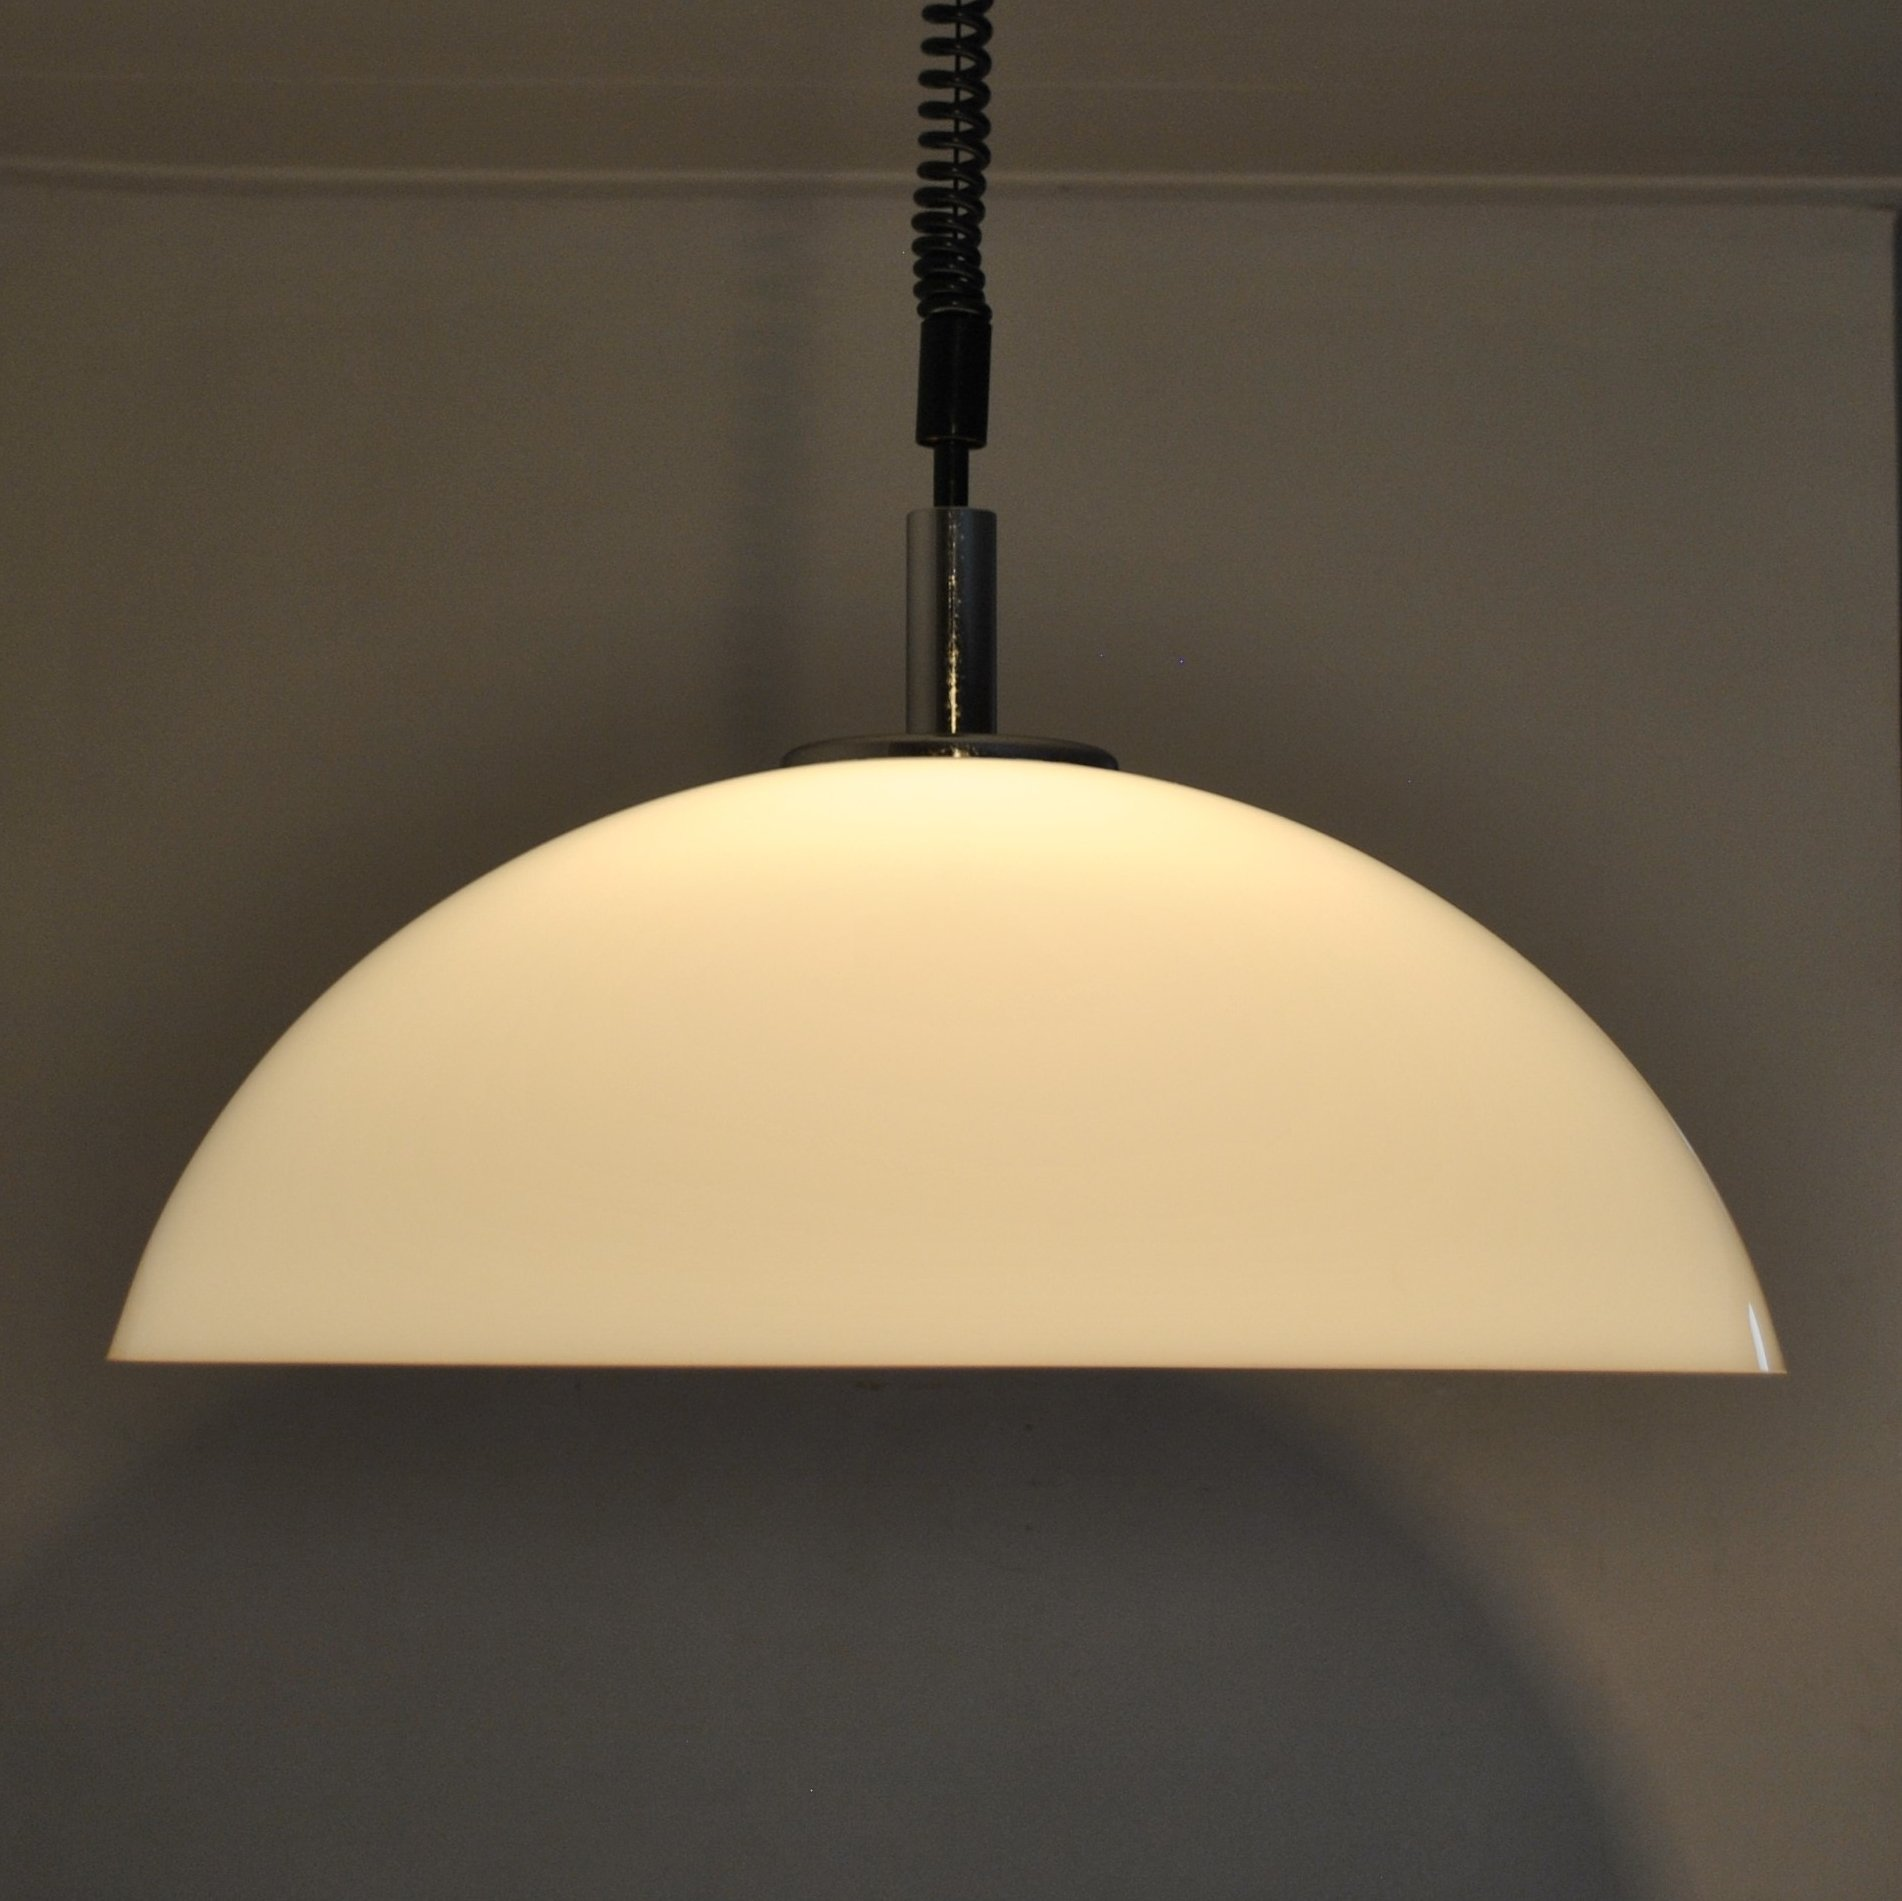 Design Verlichting Amsterdam Hanging Lamp By Raak Design Team For Raak Amsterdam 1960s